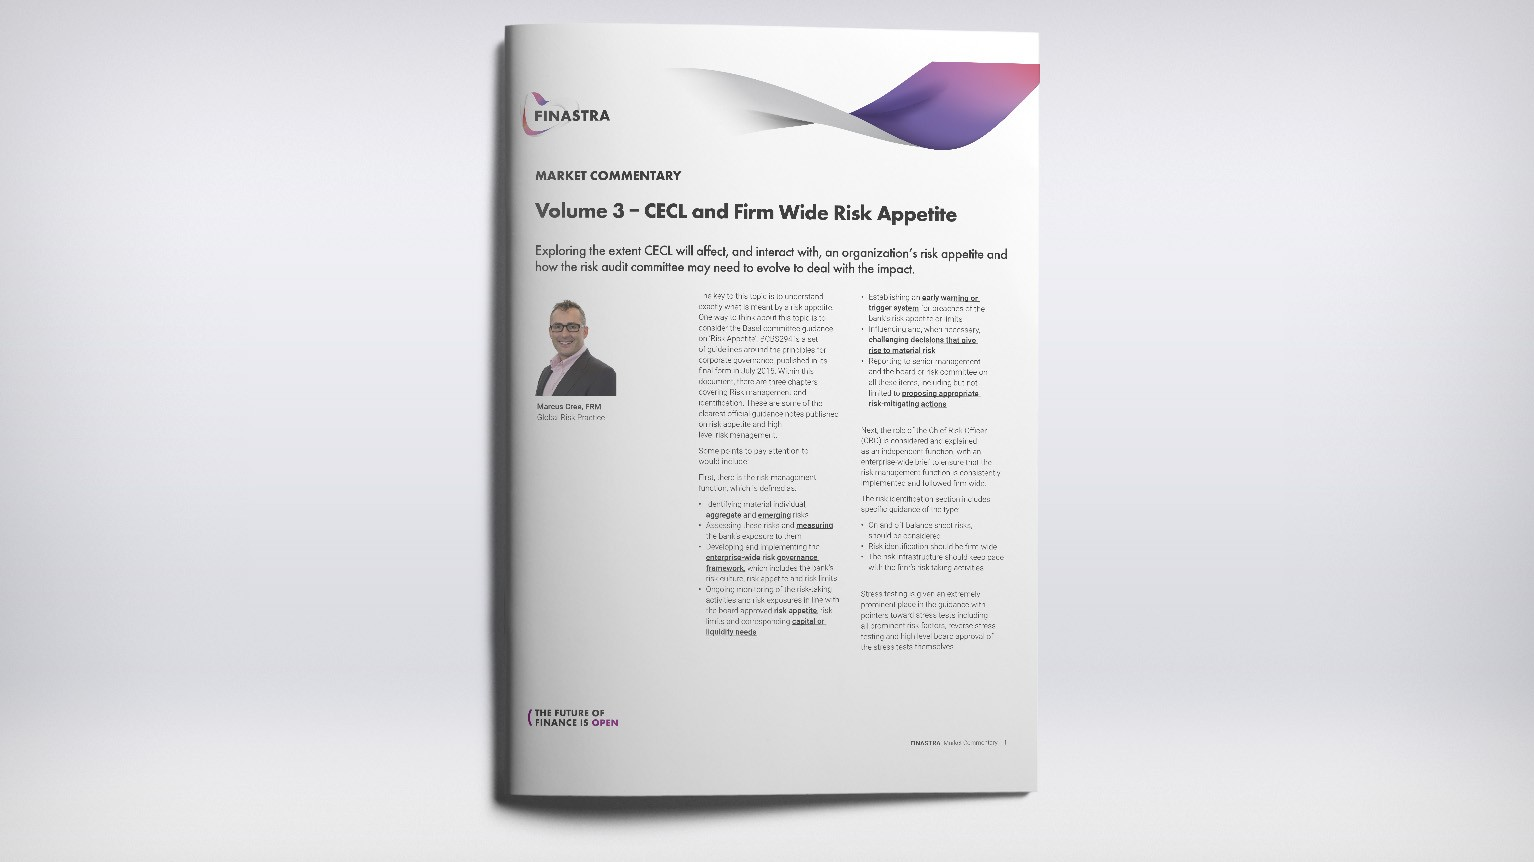 Volume 3 - CECL and Firm Wide Risk Appetite